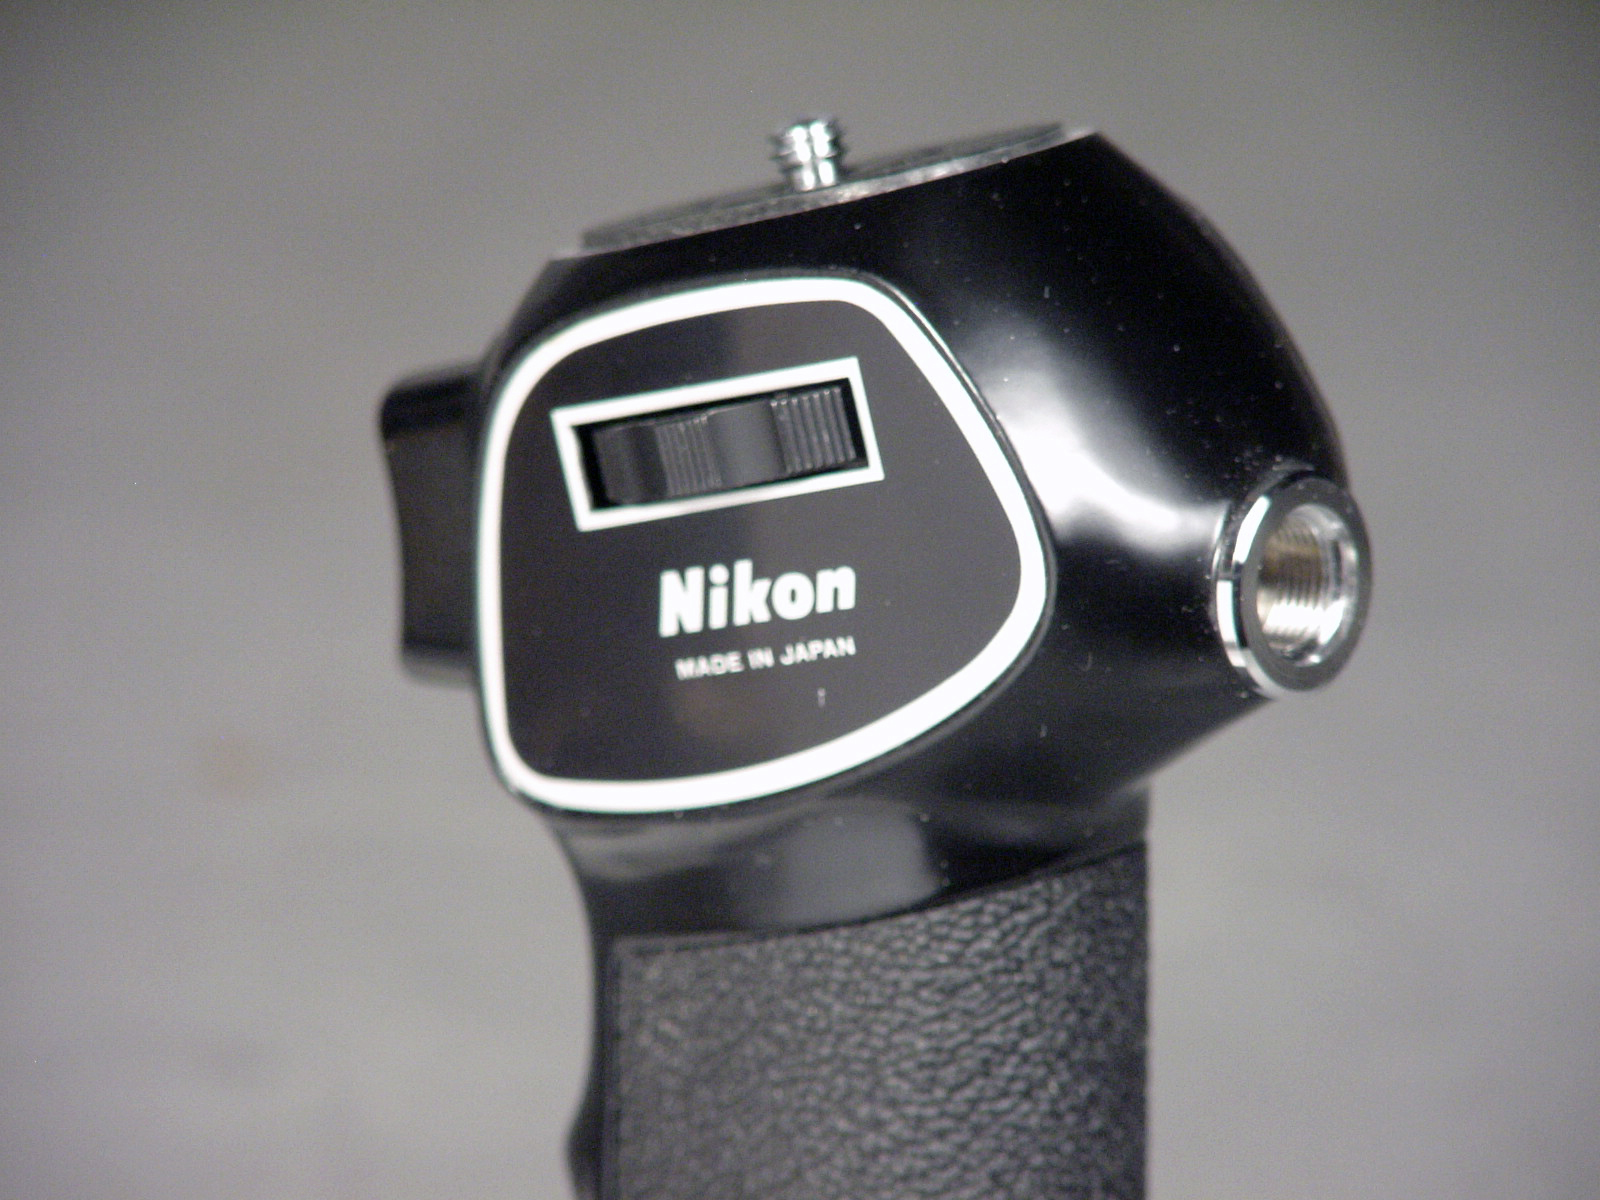 Nikon Nikkor Camera Lens Pistol Grip Model 2 Shutter